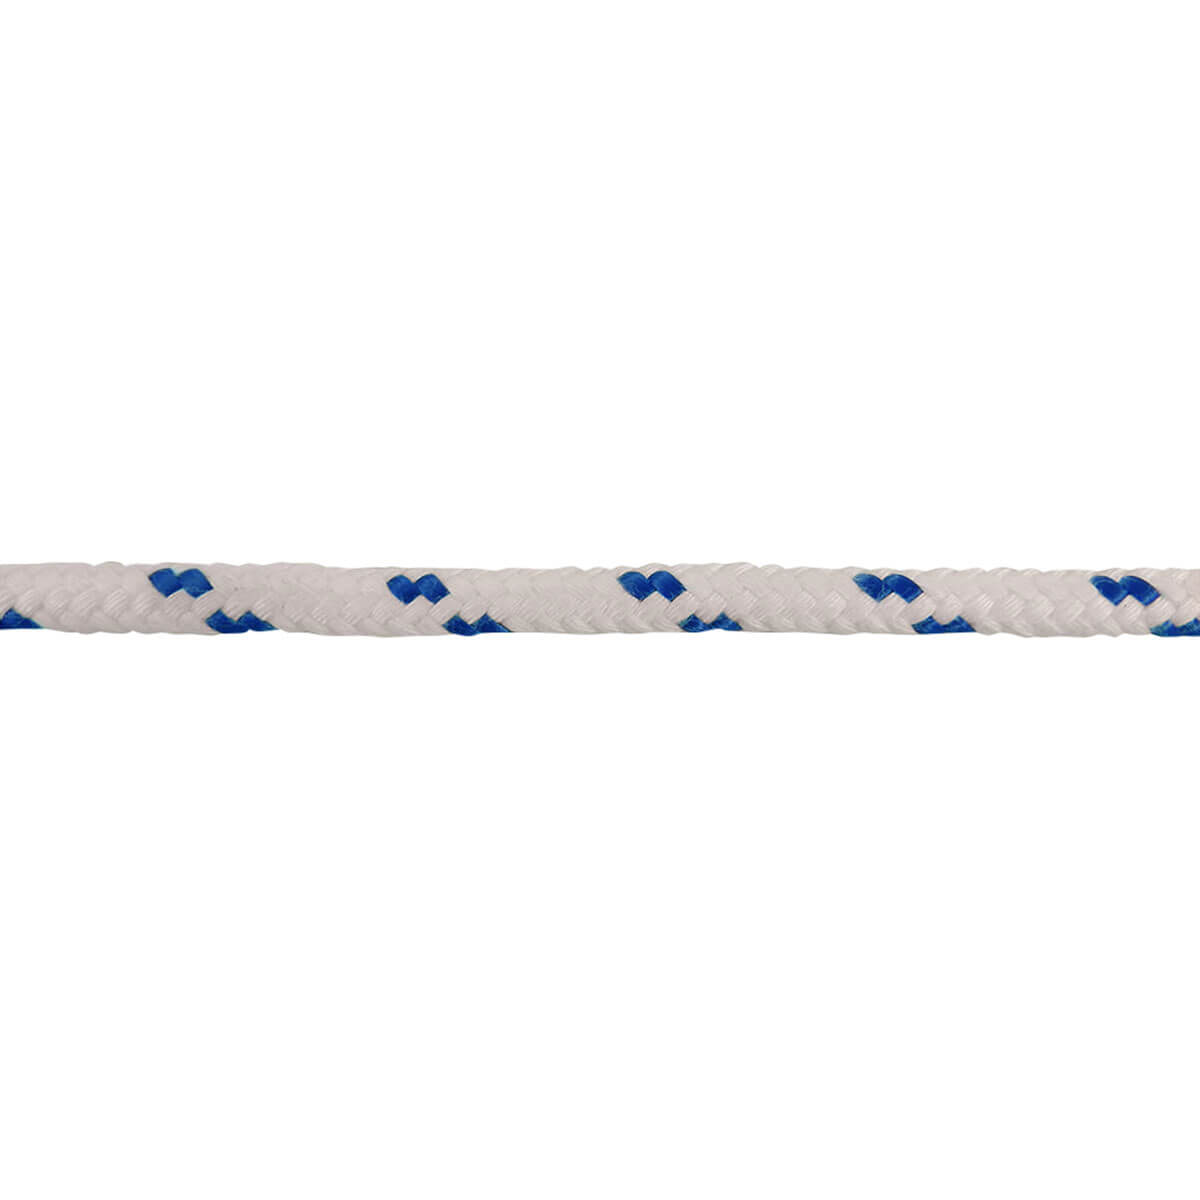 Polyester Clothesline - Blue/White - 1/4-in x 100-ft